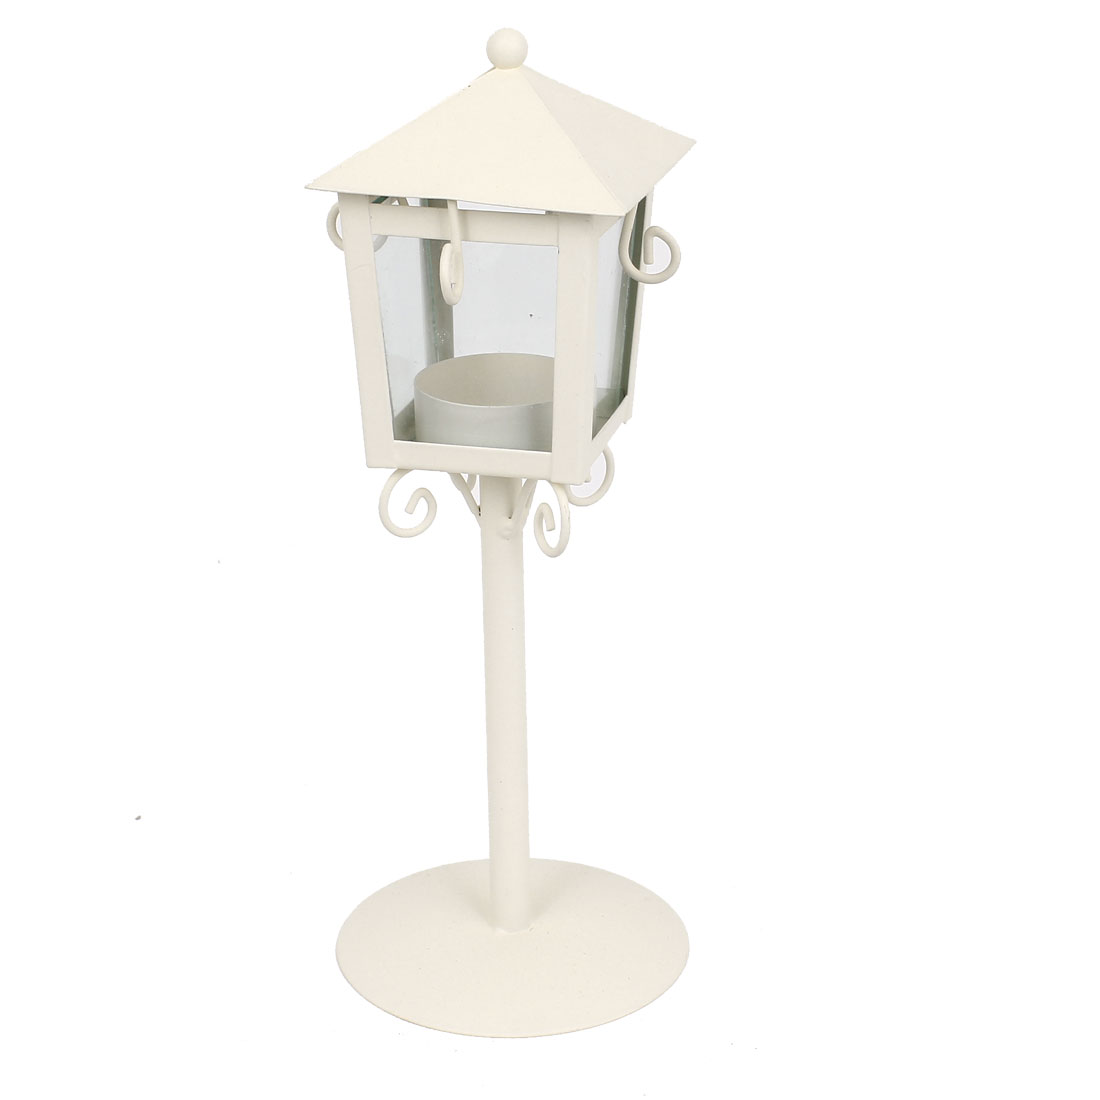 Metal Glass Hanging Candle Holder Tea Light Stand Lantern Gift White